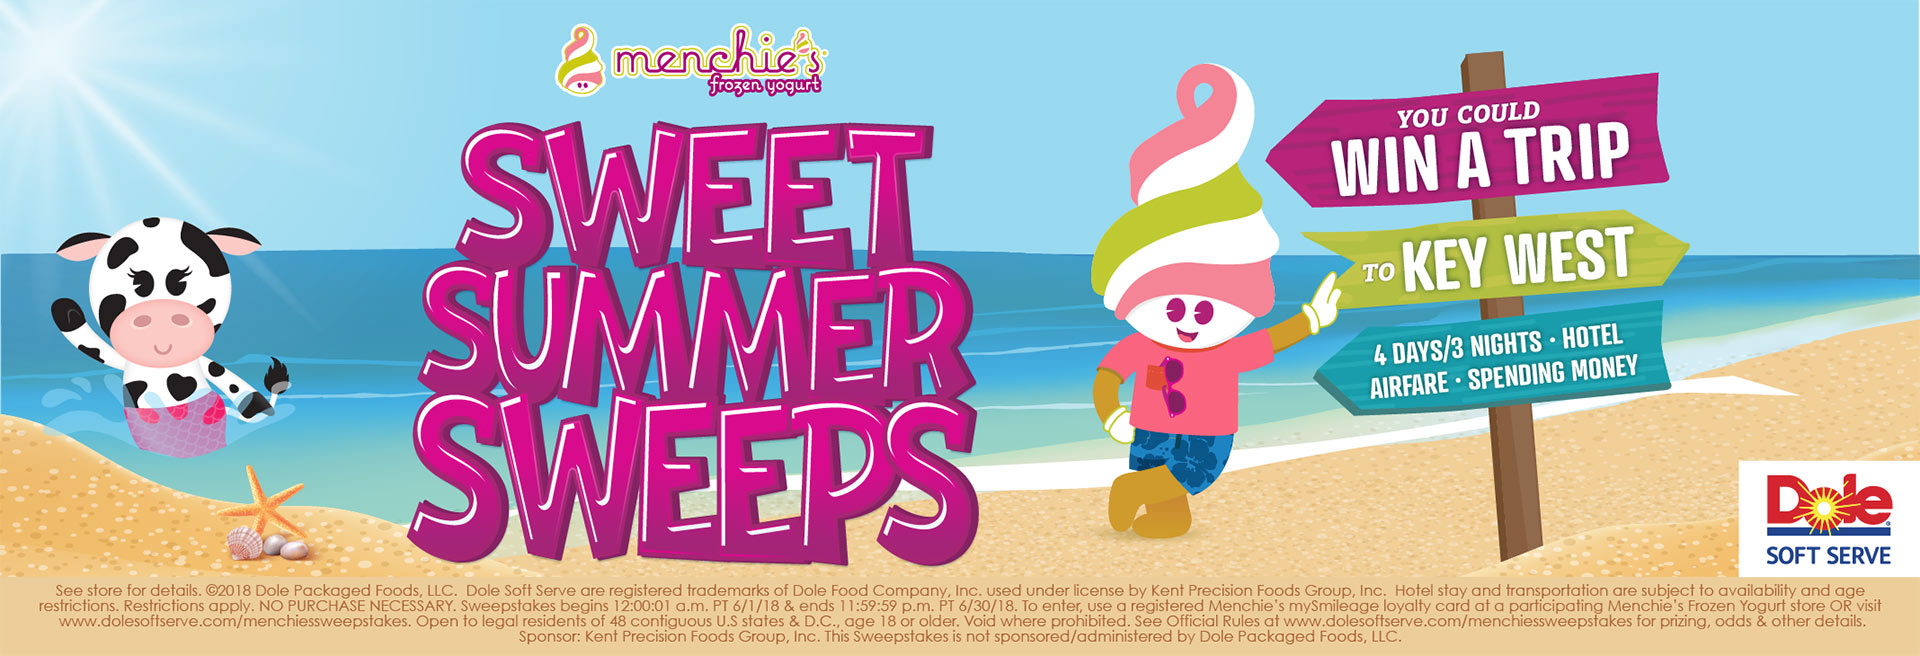 Menchie on the beach leaning against large letters that spell SWEET SUMMER SWEEPS